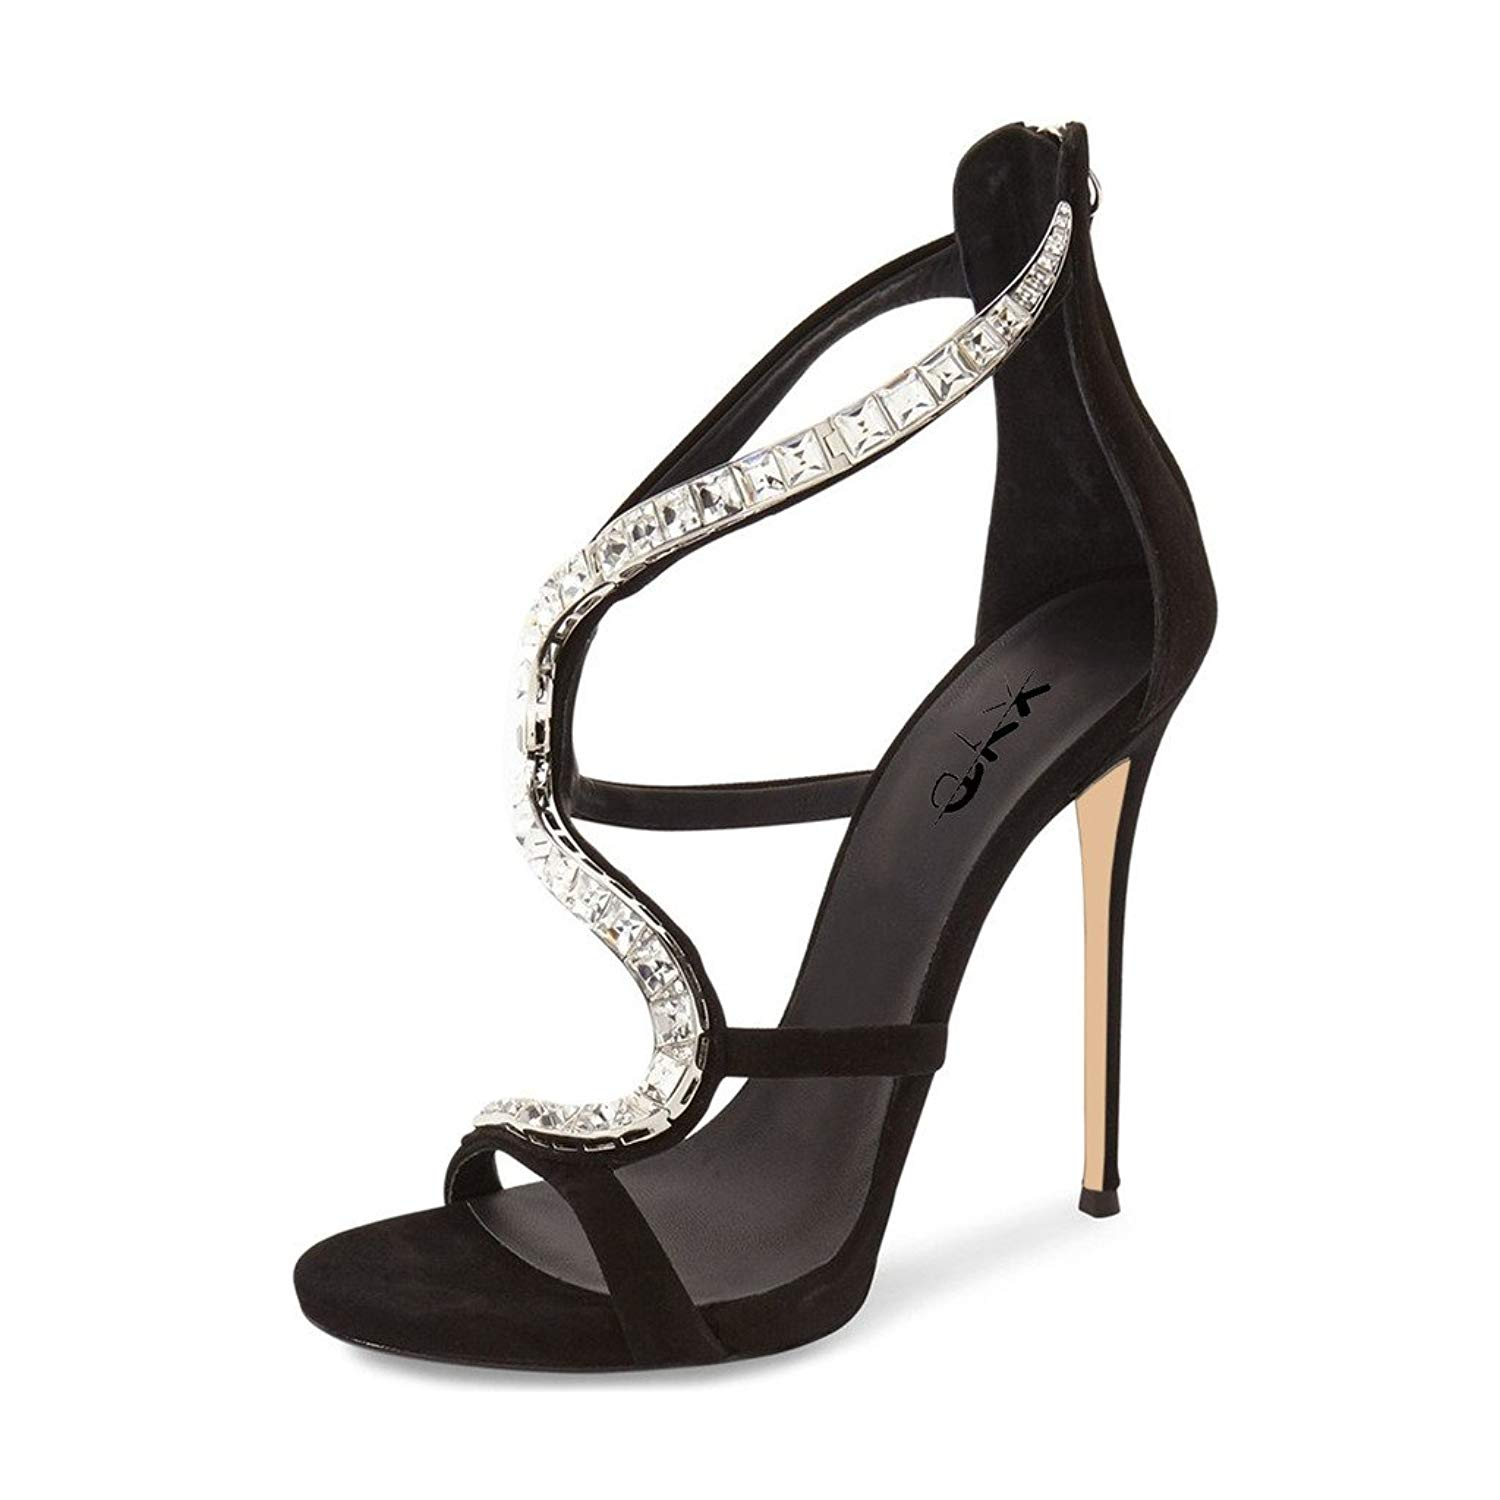 601f1e5a1f65 Get Quotations · XYD Cocktail Party Stilettos Sandals Rhinestones Strappy  High Heels Sexy Dress Pumps Shoes for Women